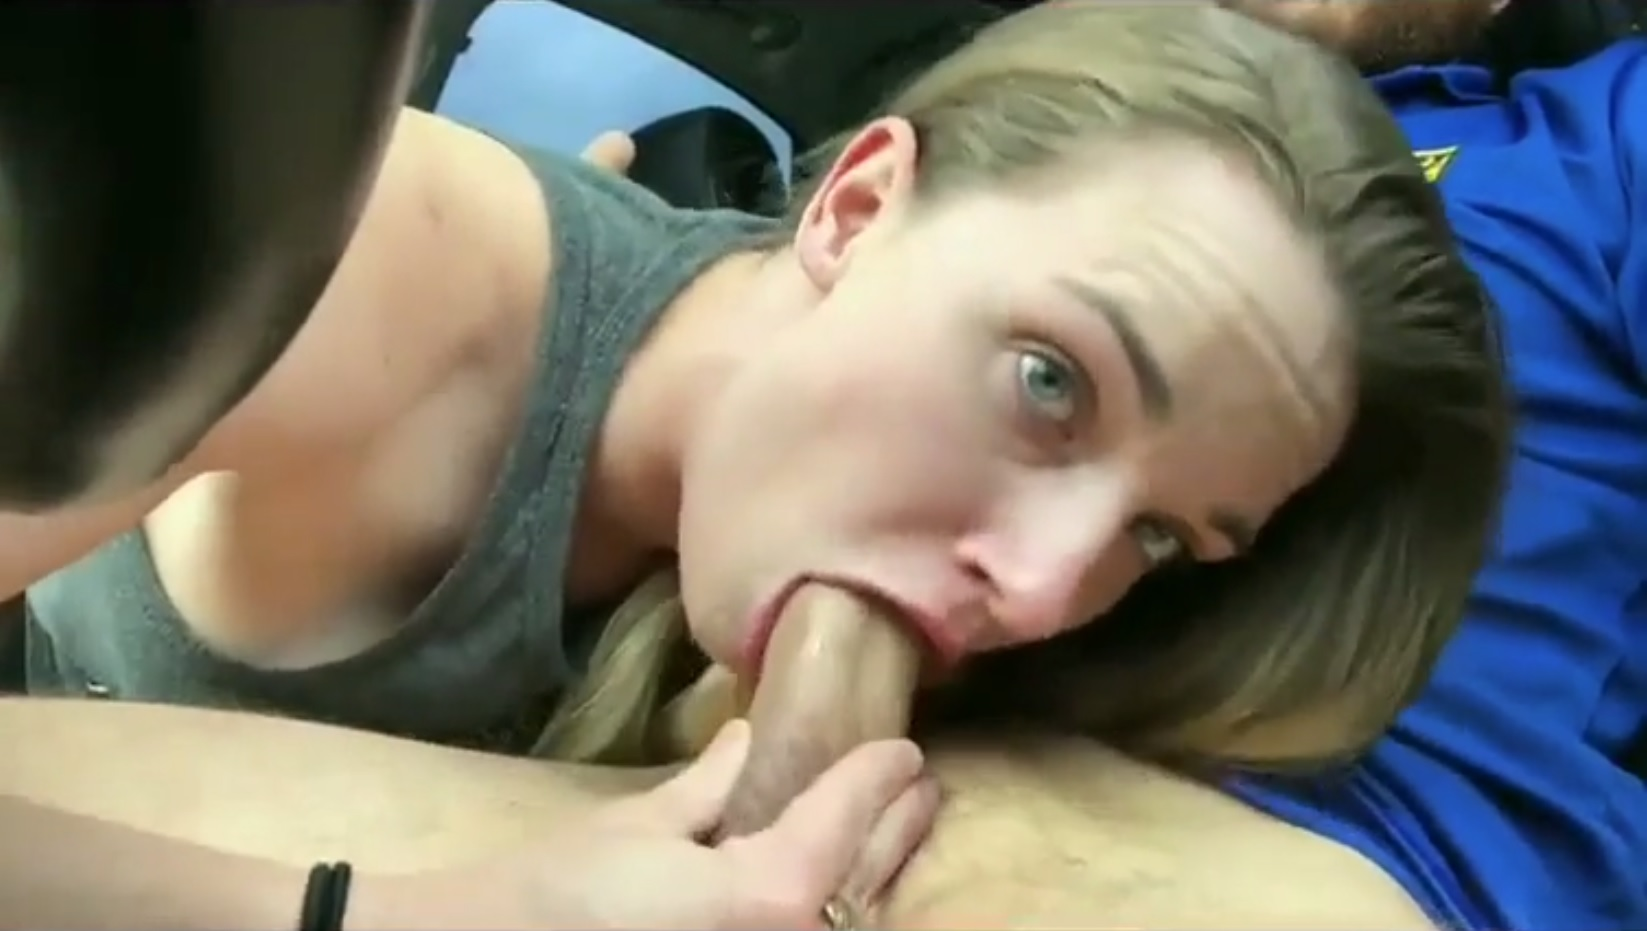 Blowjob  Horny College Girl Gives Perfect Blowjob In Car-7076